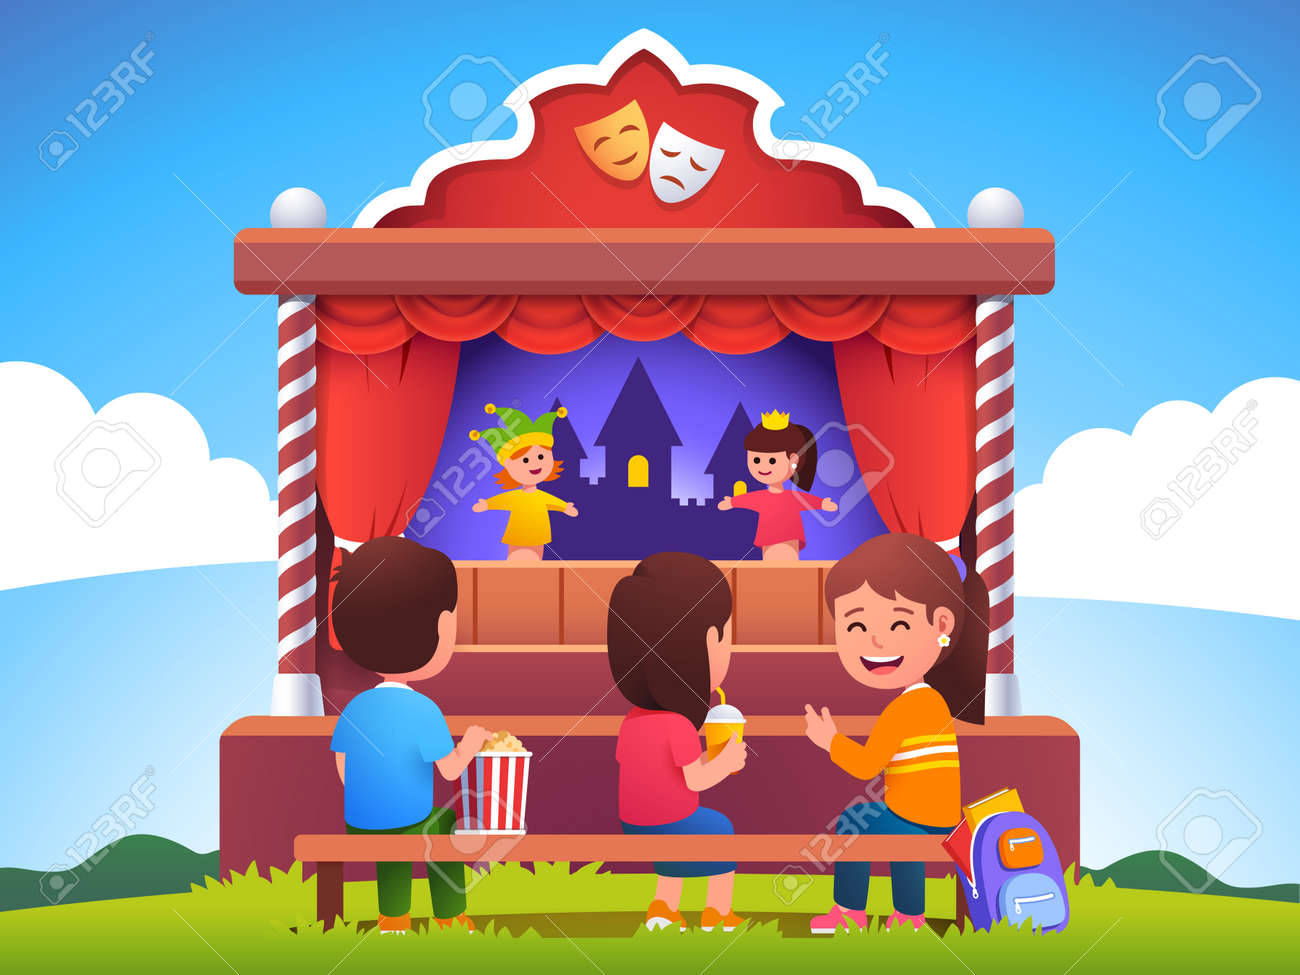 Kids audience watching puppet show on stage - 153267313